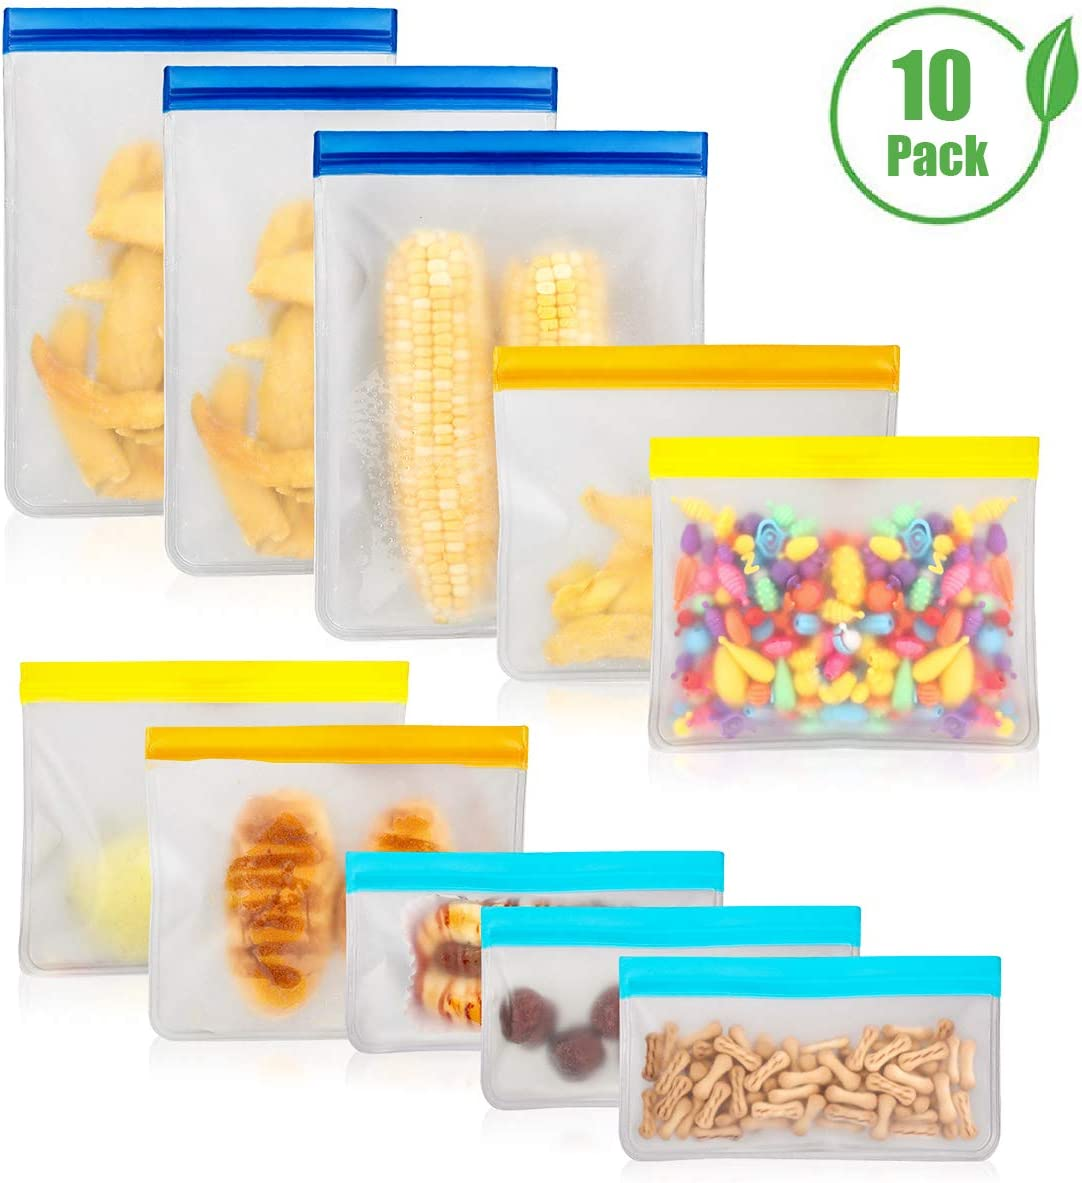 10 Pack Reusable Food Storage Bags, PEVA Leakproof Ziplock Lunch Bags for Home, Picnic, Travel, Make-up, BPA Free and Eco-friendly (3 Freezer Bags + 4 Sandwich Bags + 3 Snack Bags)